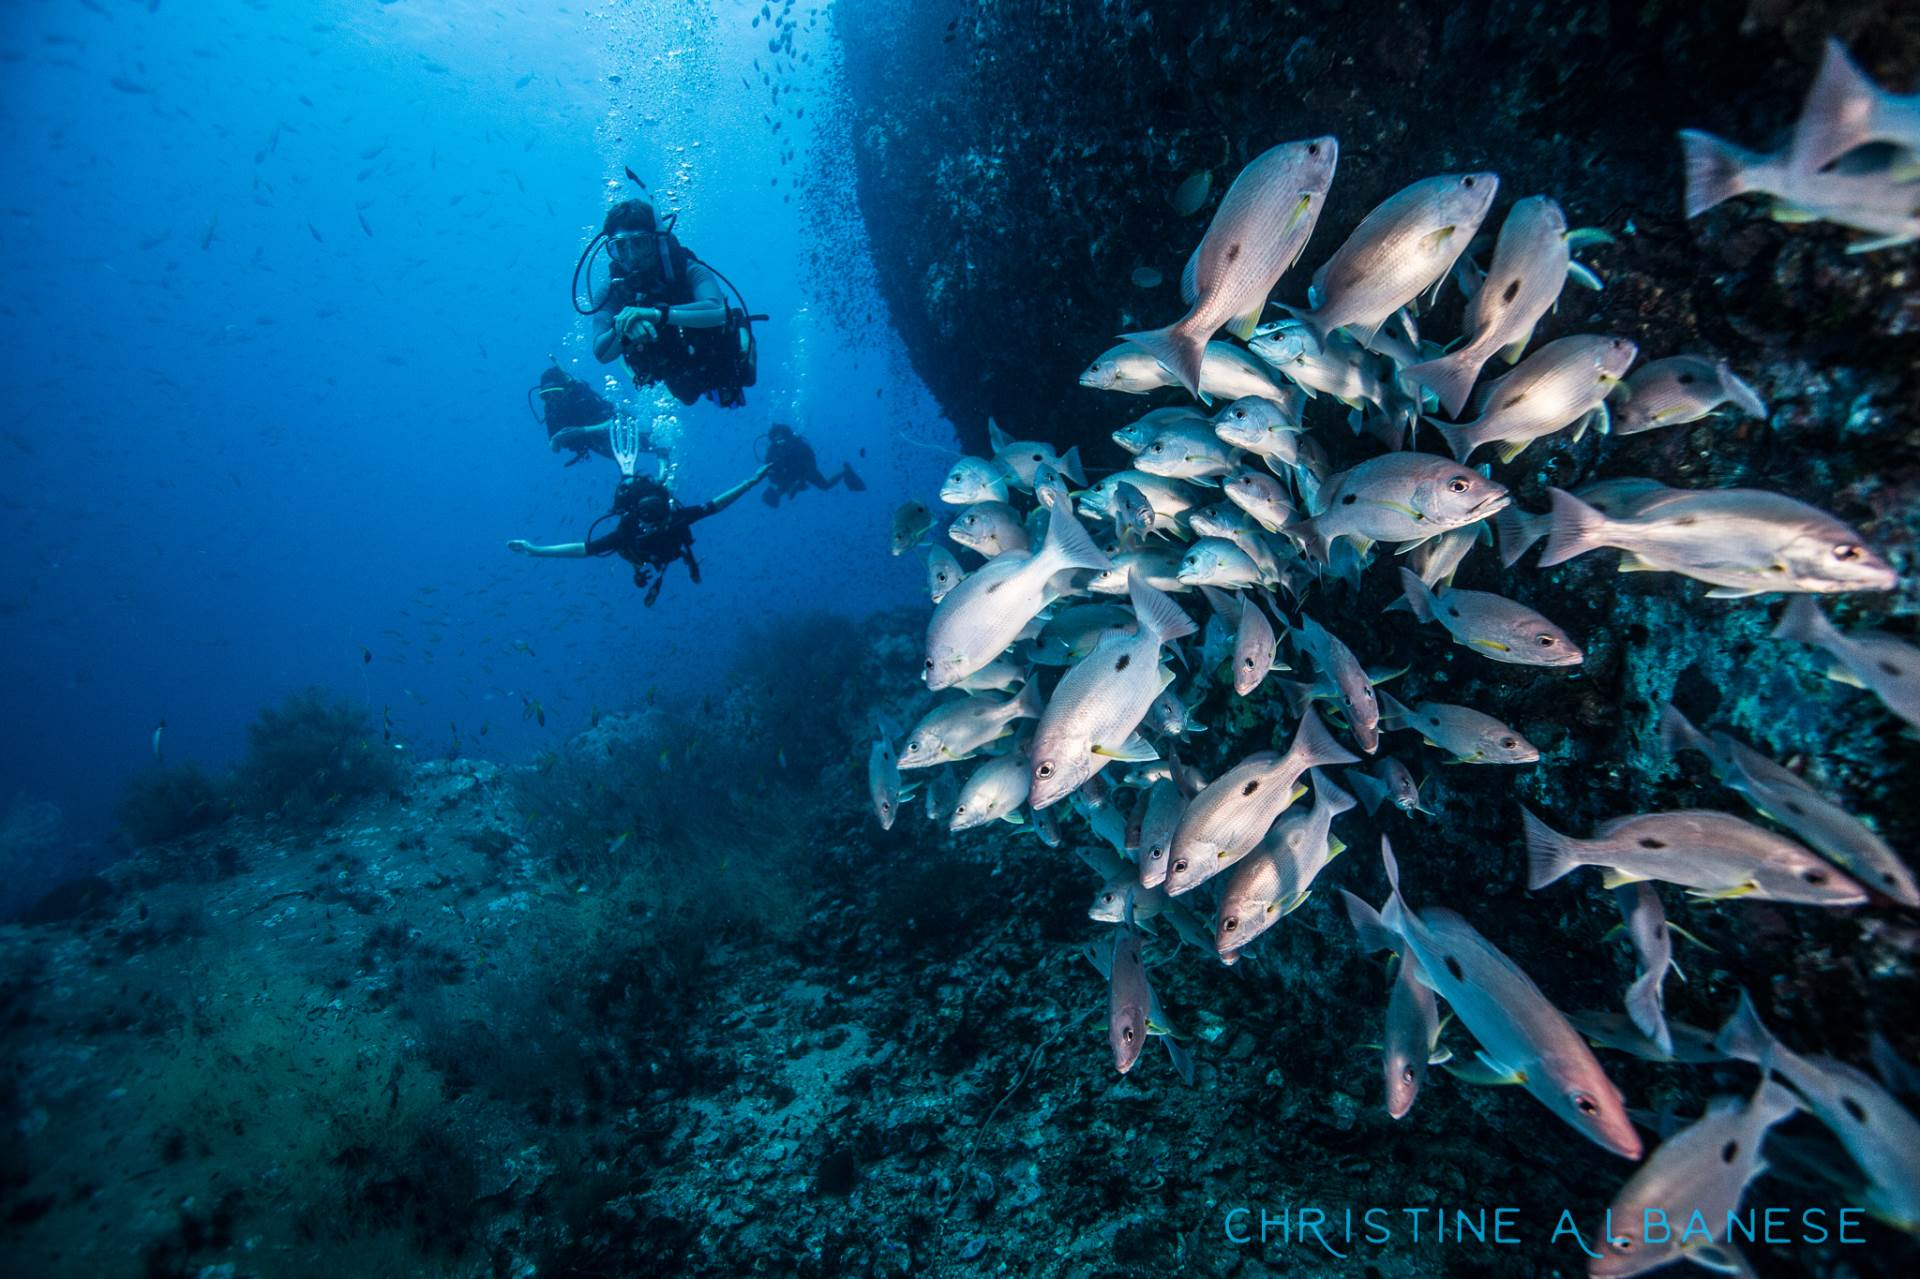 Checking out Barracuda Rock at around 25m depth, a school of one-spot snappers disperses as we approach. Chumphon's reef and sea-life never fails to impress!